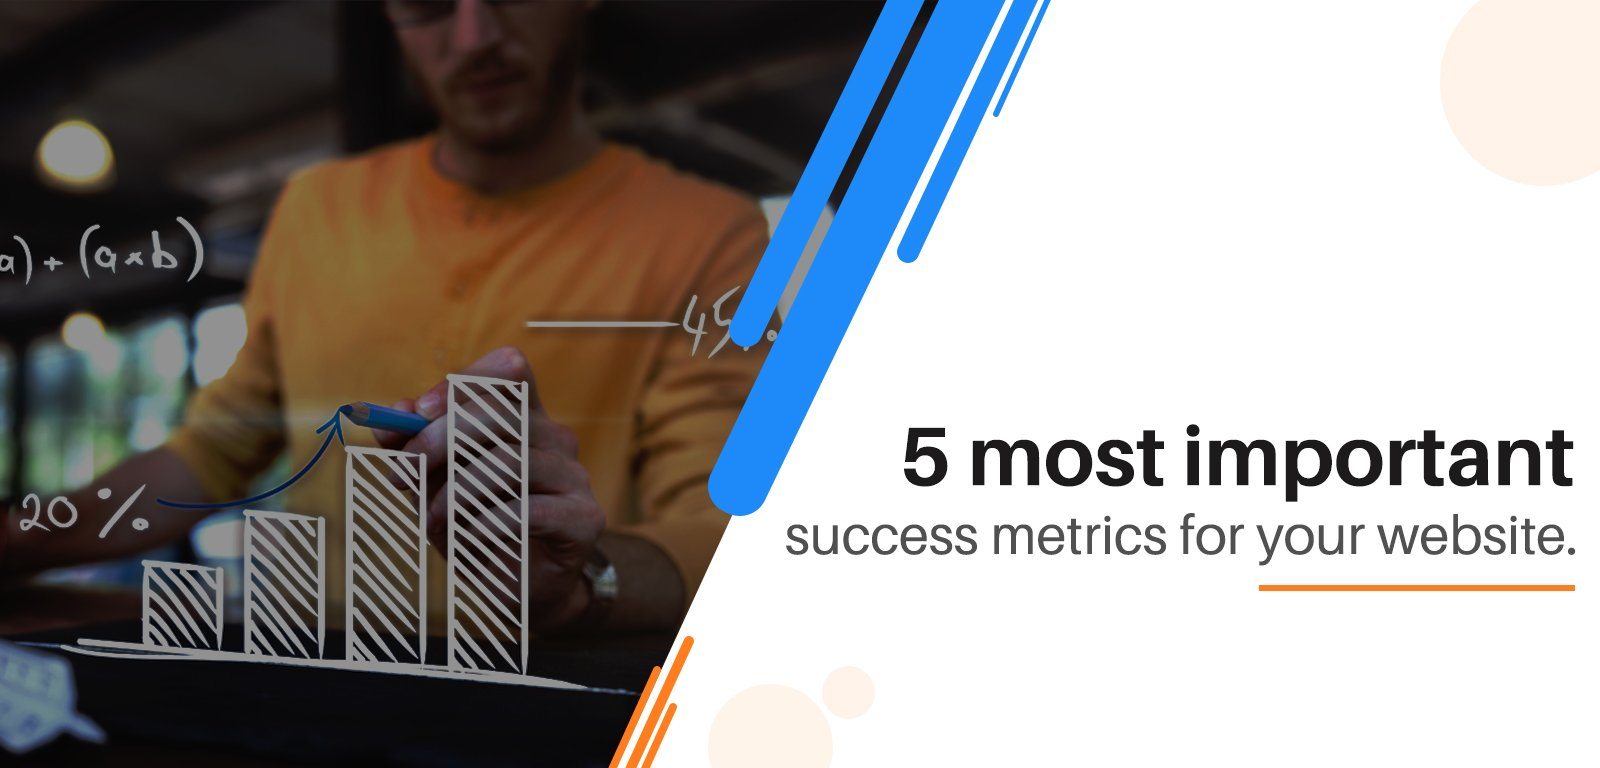 5 Most important success metrics for your website